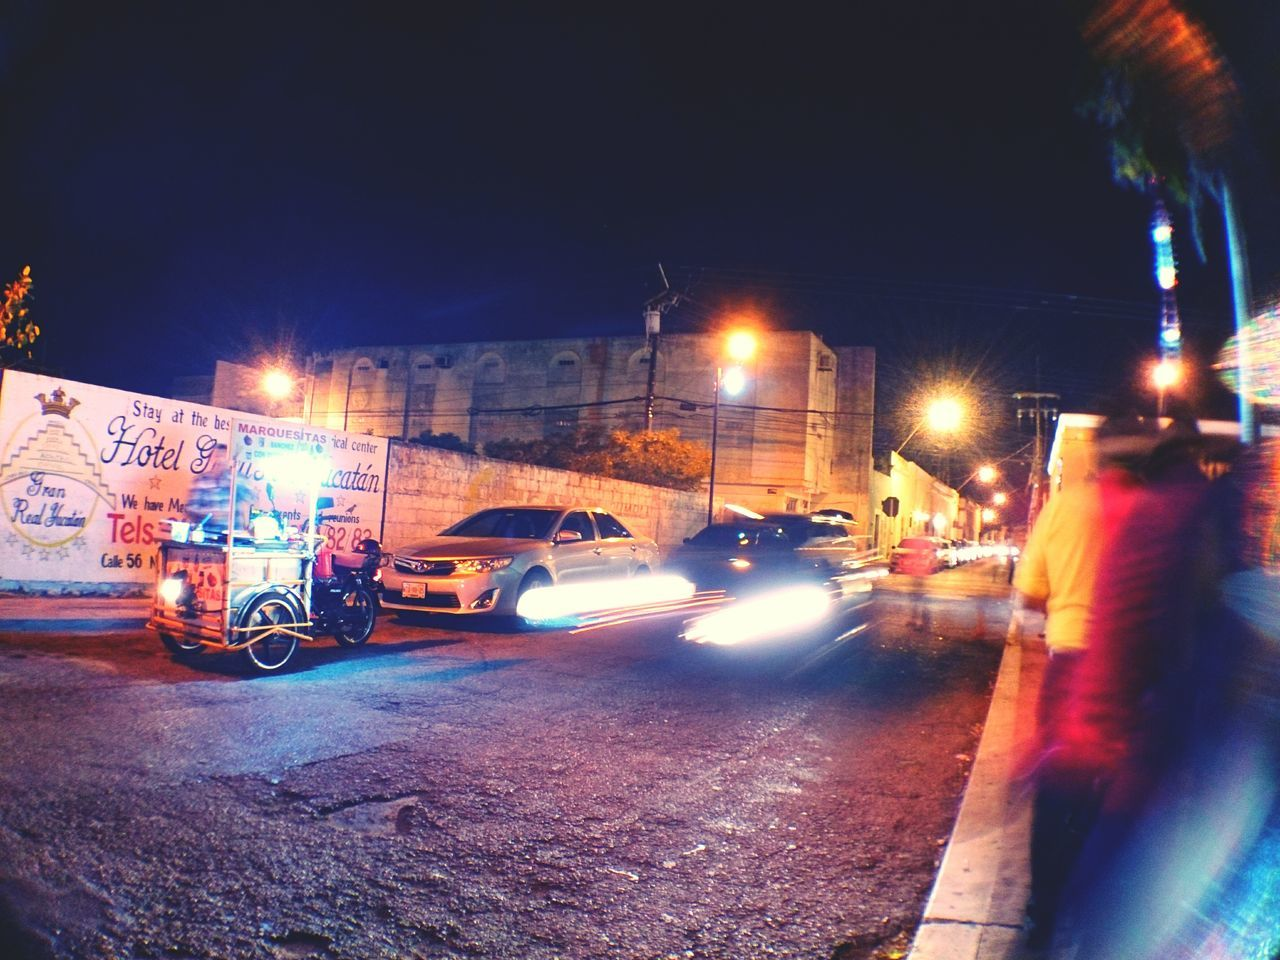 Street life. Landscape Paseo Montejo Filux Mexico 2017 Colors Night Photography City Life Merida♡ Yucatan Mexico Urban Photography Outdoors Mobile Photography Street Photography Xperia ZL Mérida Yucatán Night Shot People On The Street People And Places